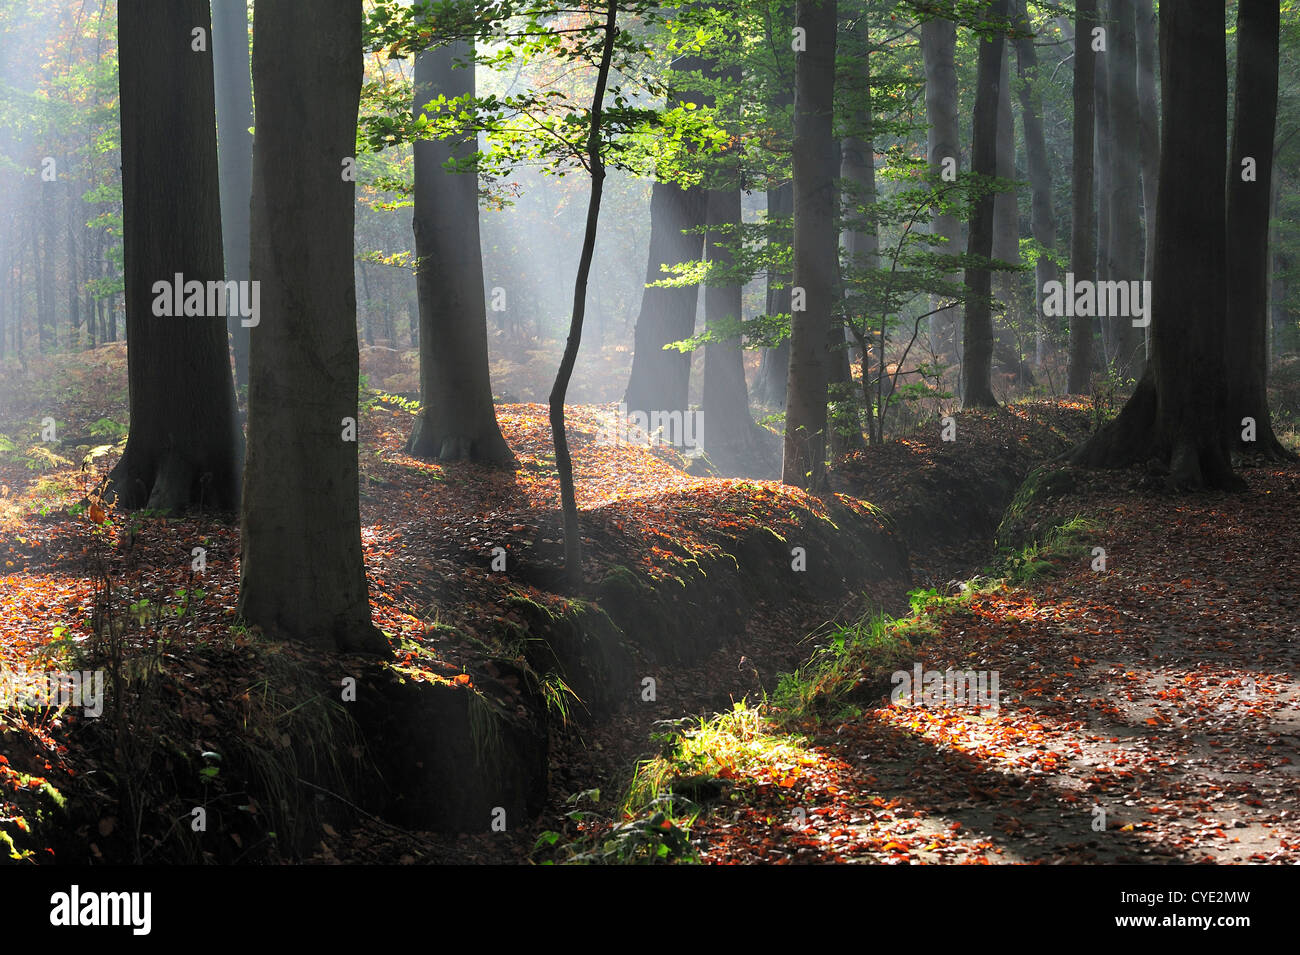 Sunrays shining through broad-leaved forest with beech trees in autumn colours at sunrise creating a tranquil atmosphere - Stock Image